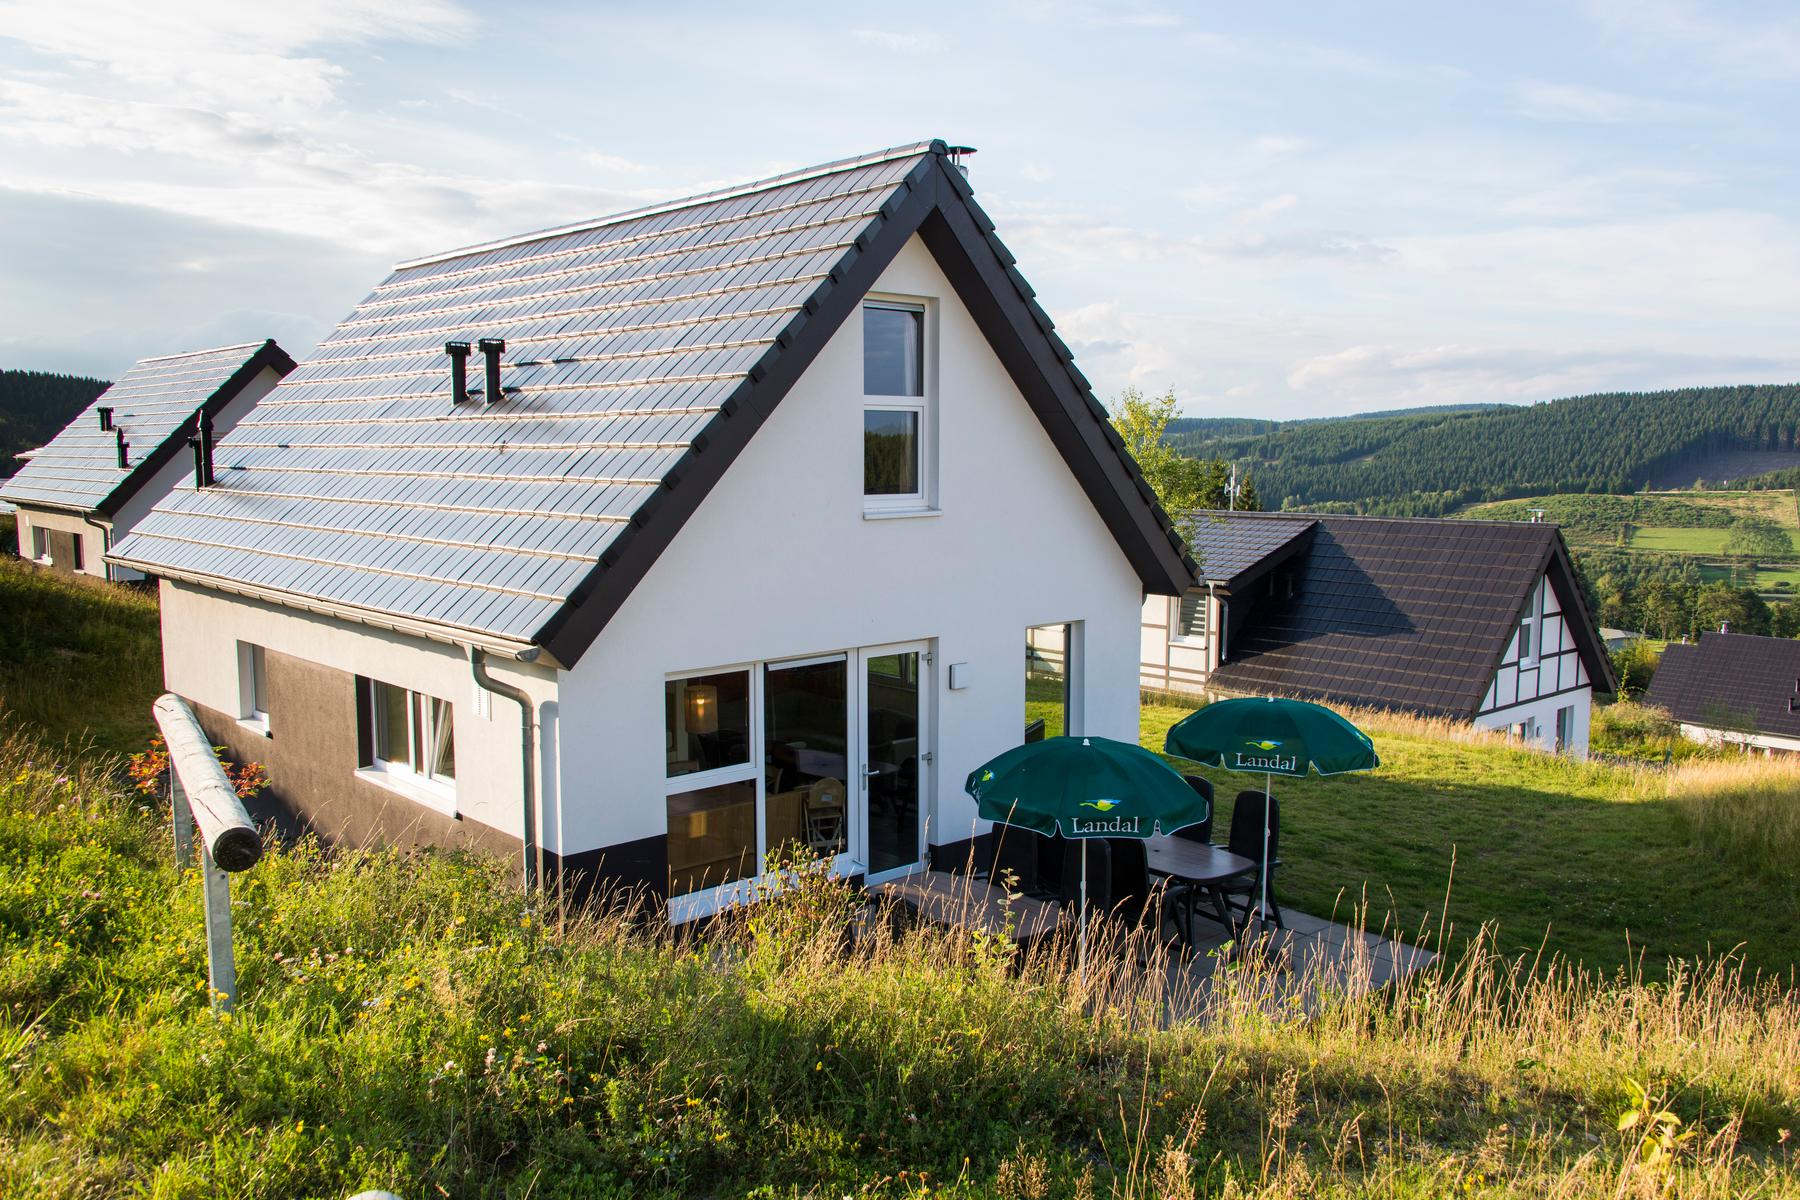 In Der Büre 21 - Bungalow 87 in Winterberg